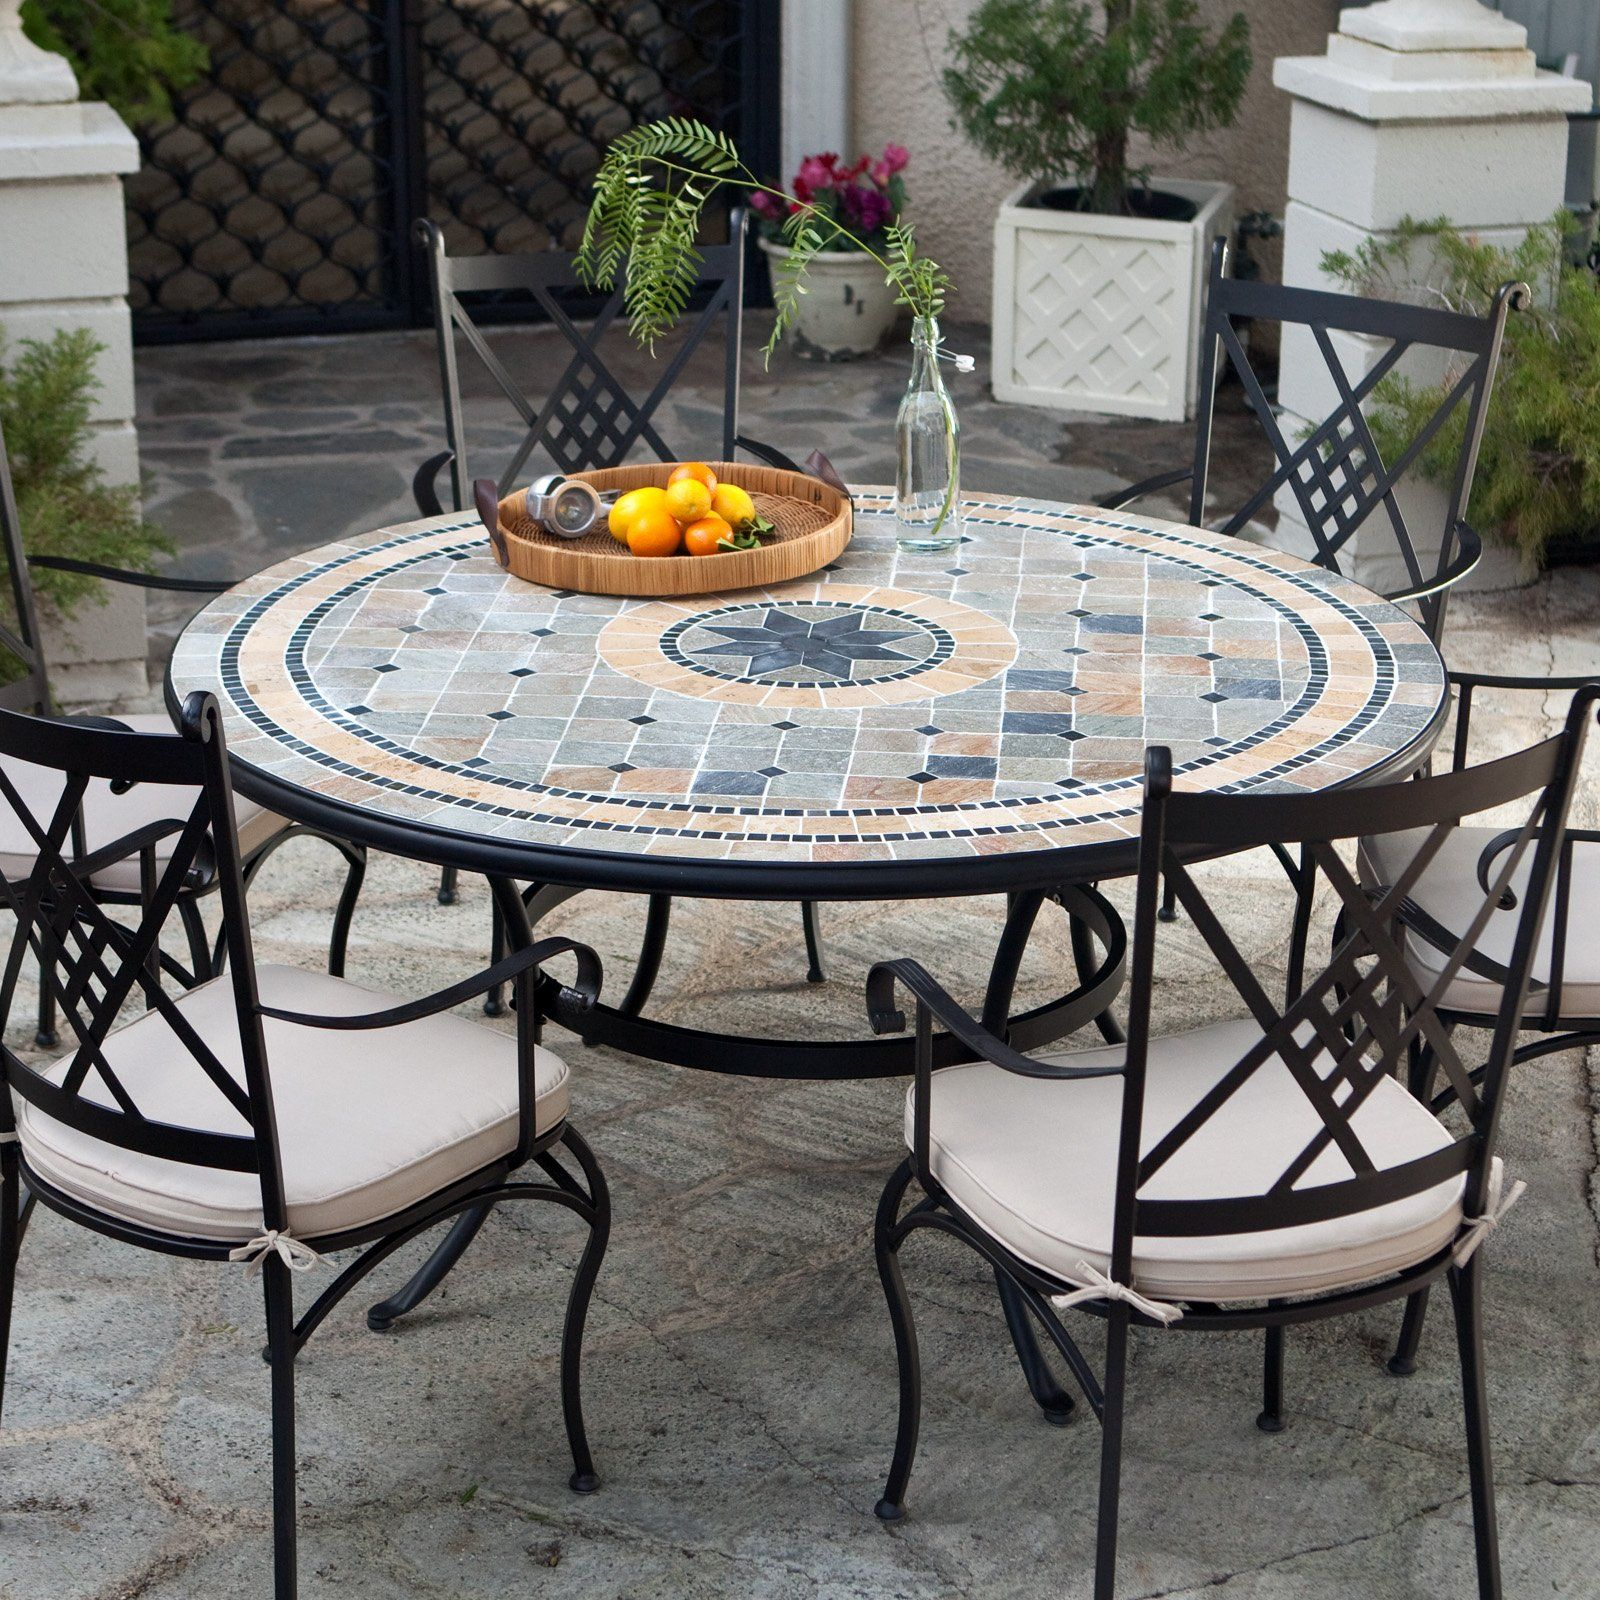 patio table mosaic clearance outdoor side brand furniture diy round dining full size whole lamp shades thomasville end tables rattan drinks espresso wood square with storage sofa